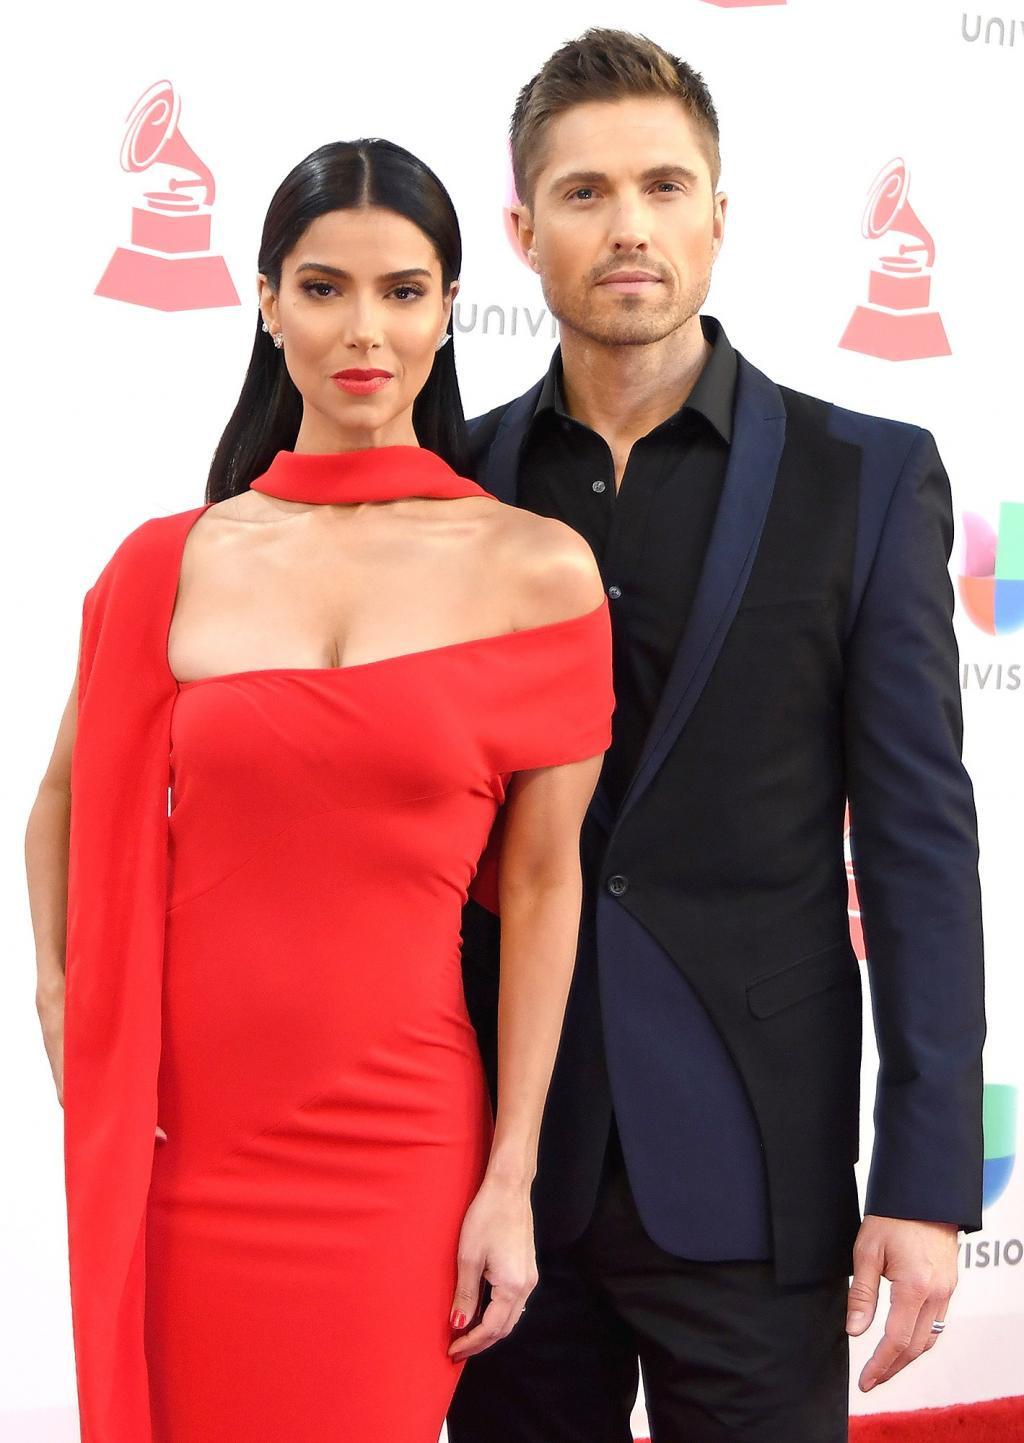 Roselyn Sánchez and Eric Winter Expecting Second Child